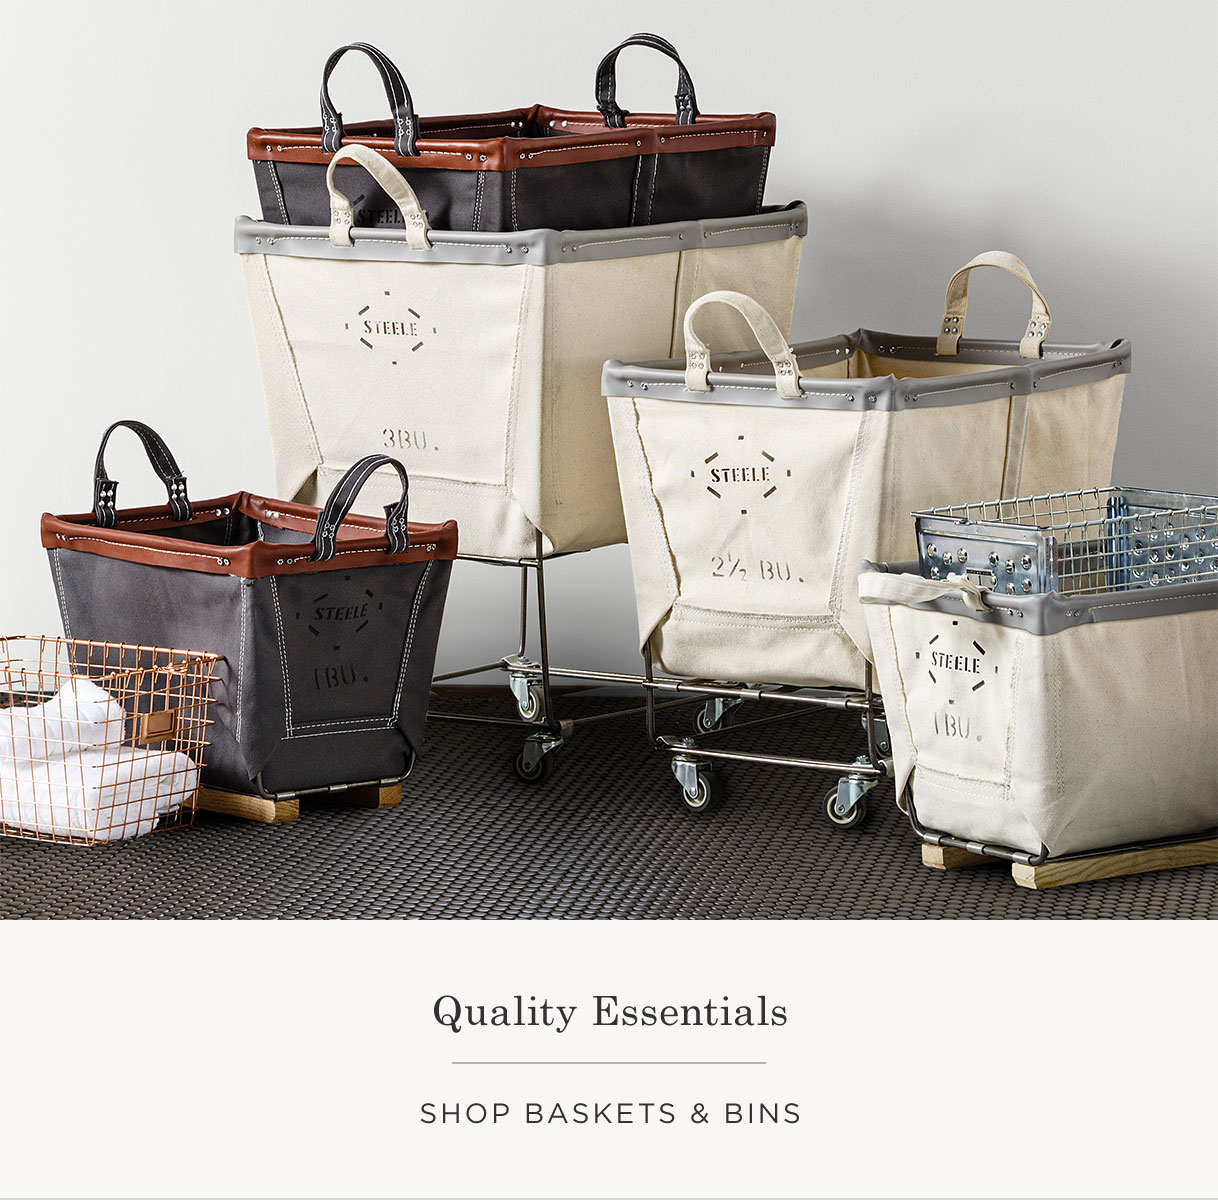 Shop Baskets & Bins